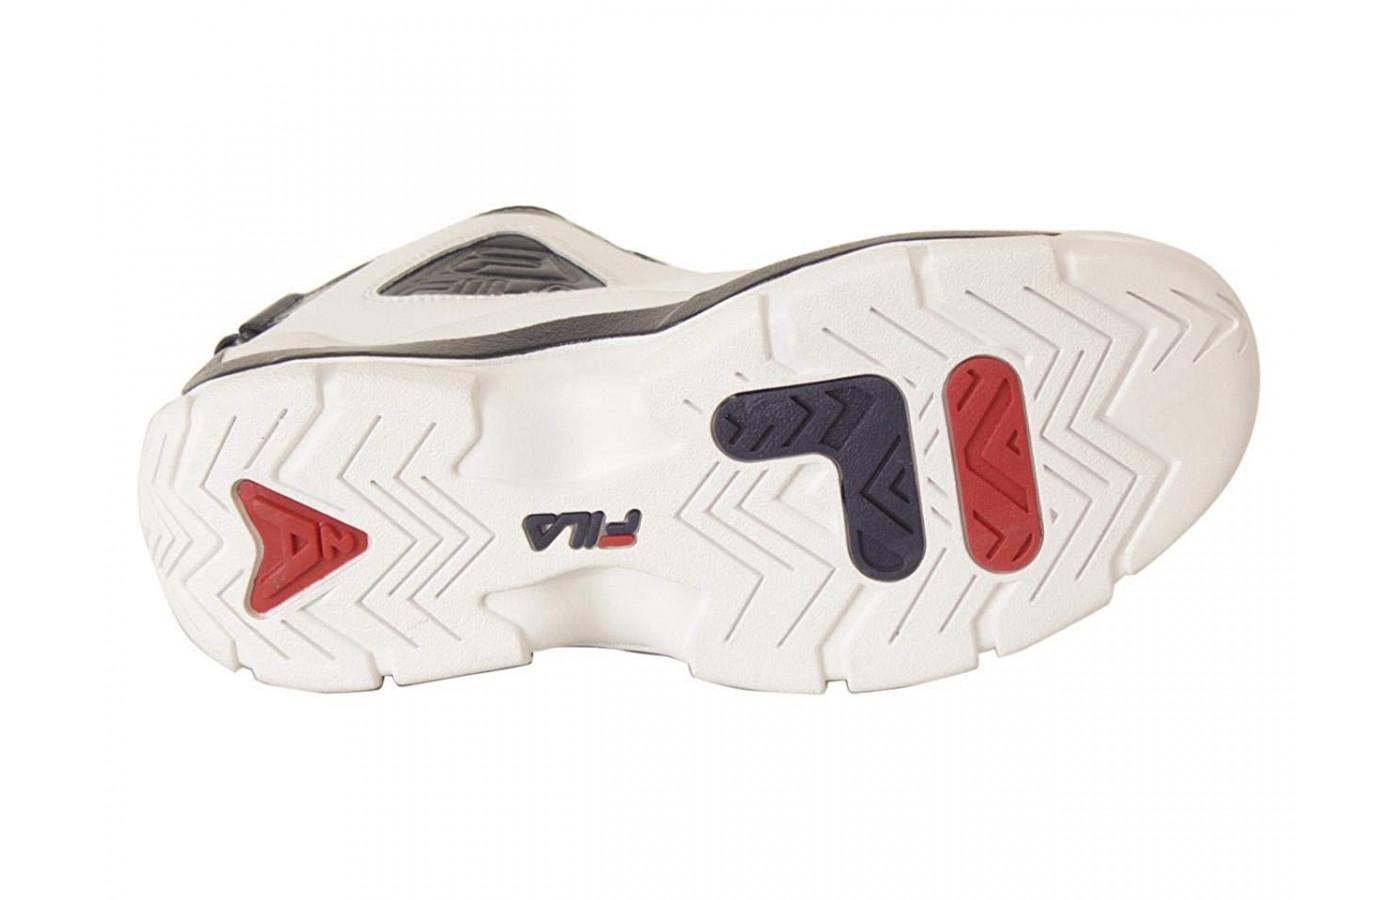 Fila 96 Grand Hill Sole